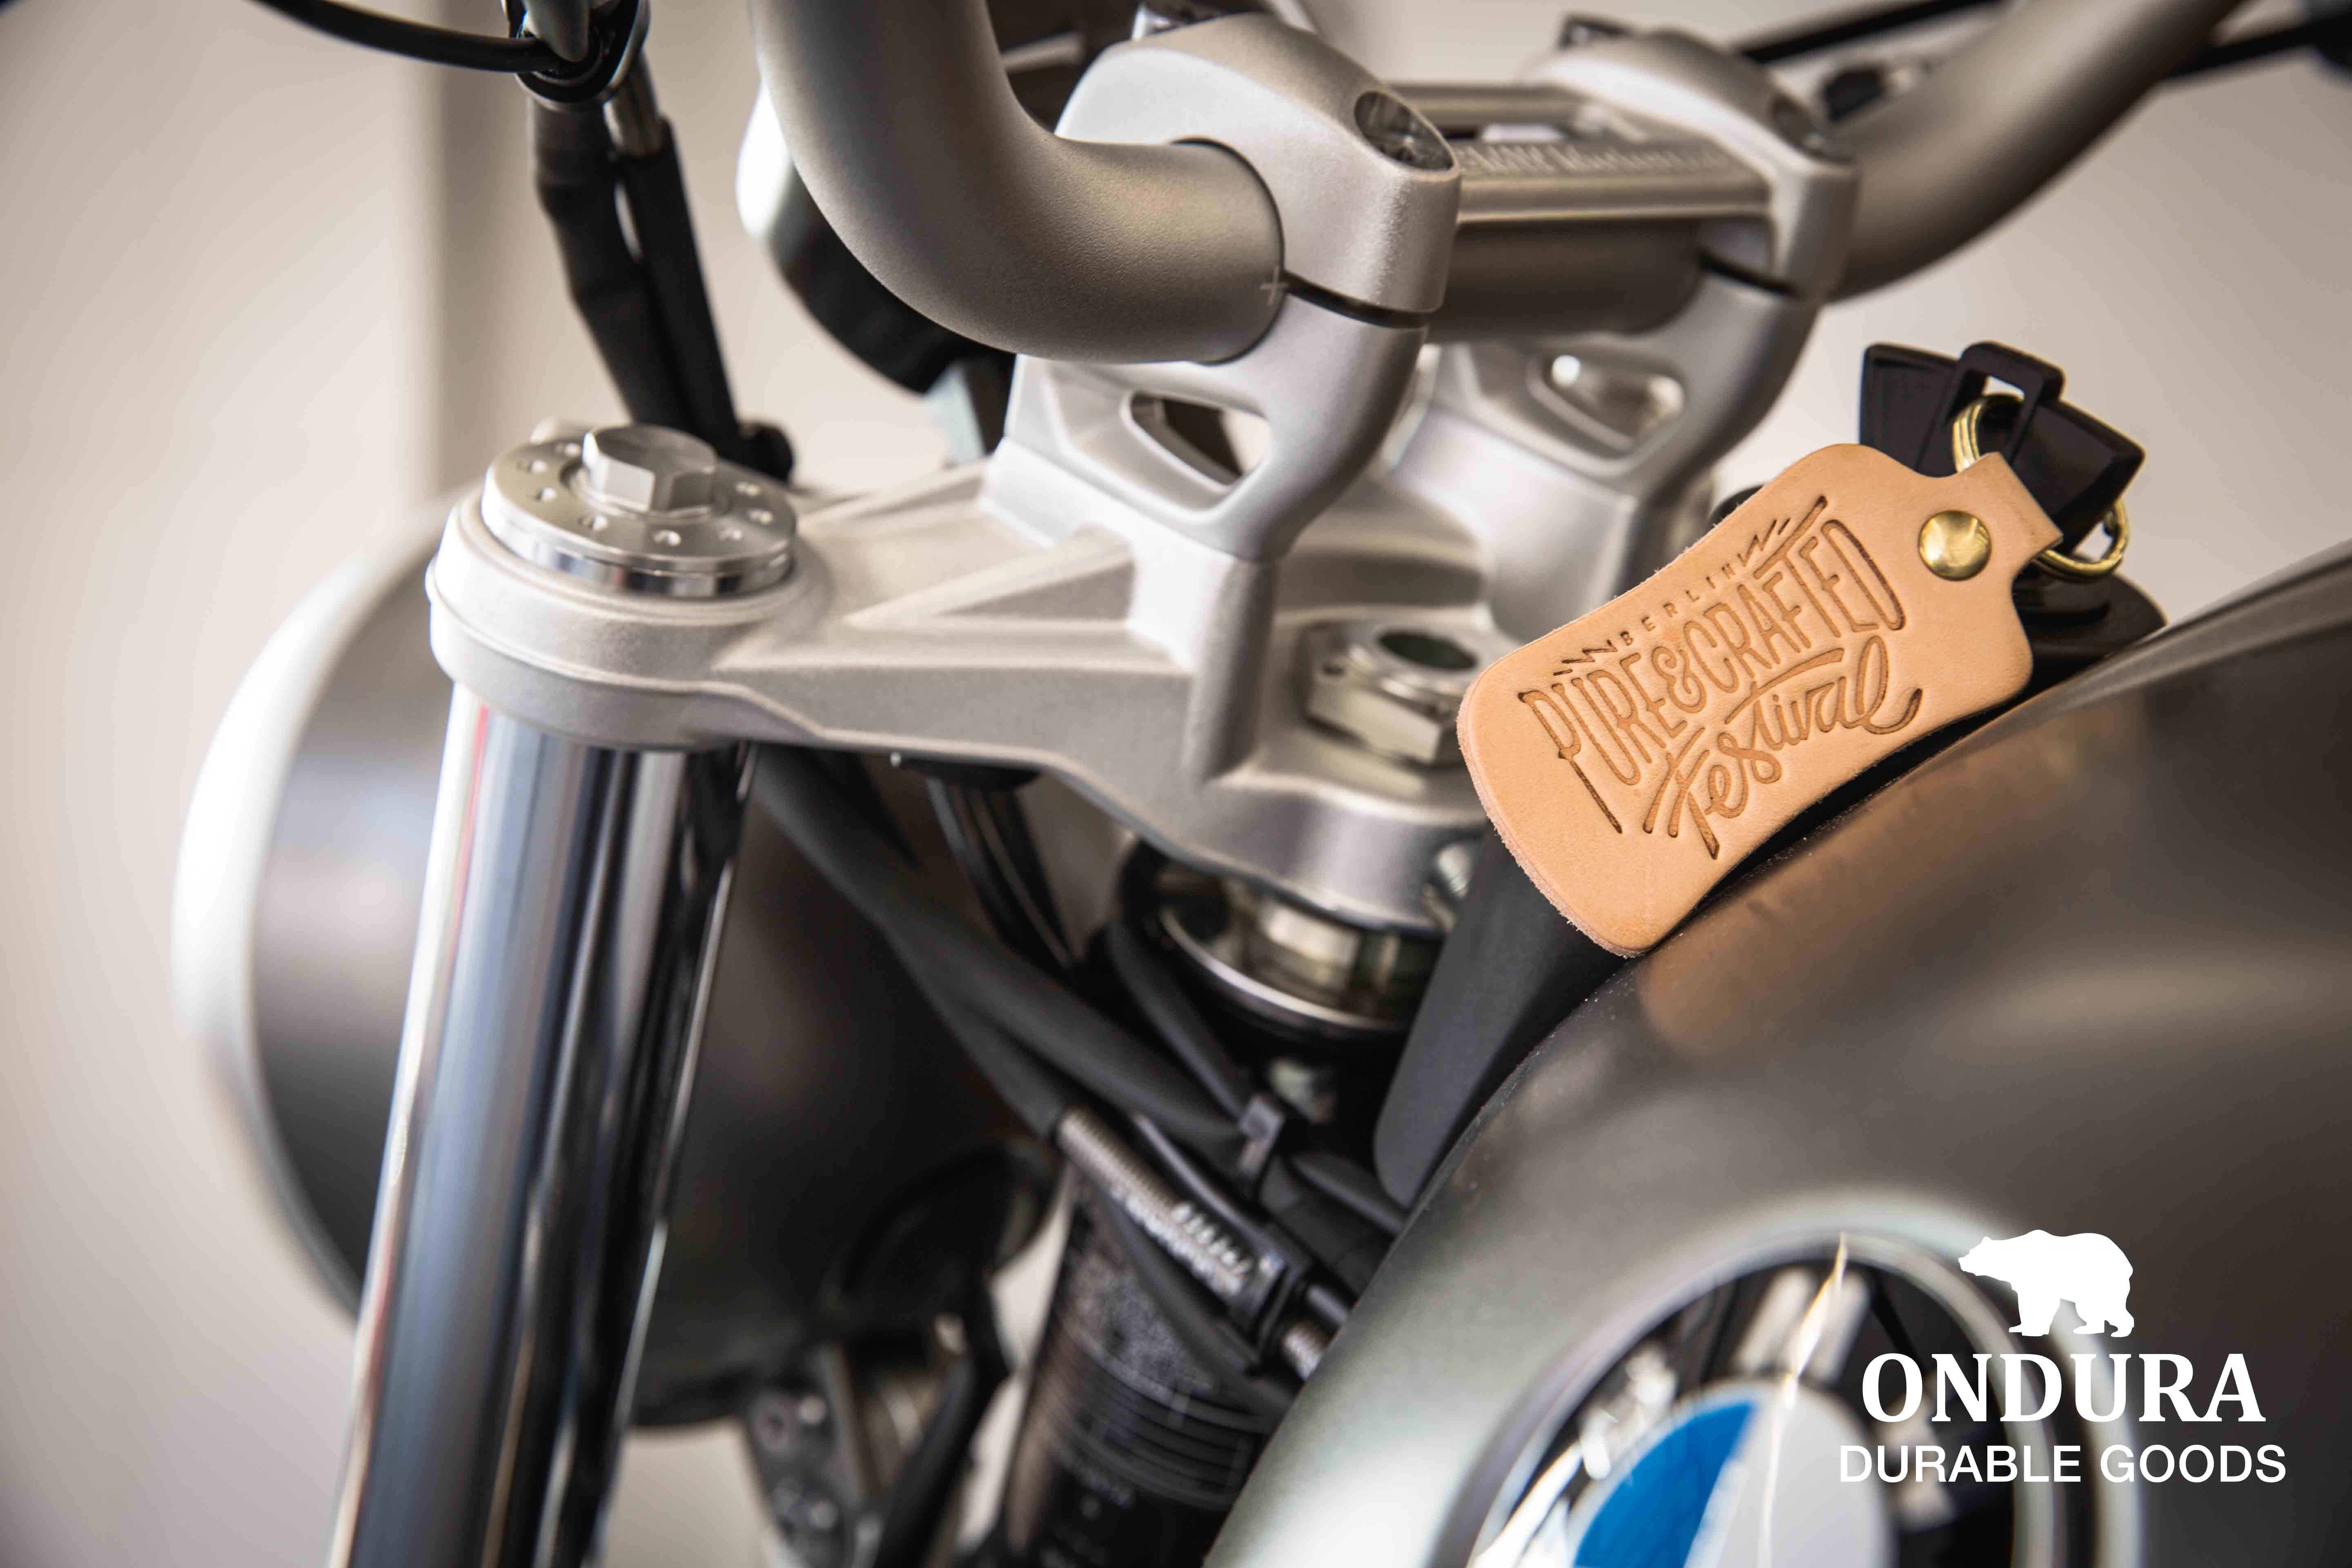 ondura durable goods x bmw motorrad. motorcycle key fob made from